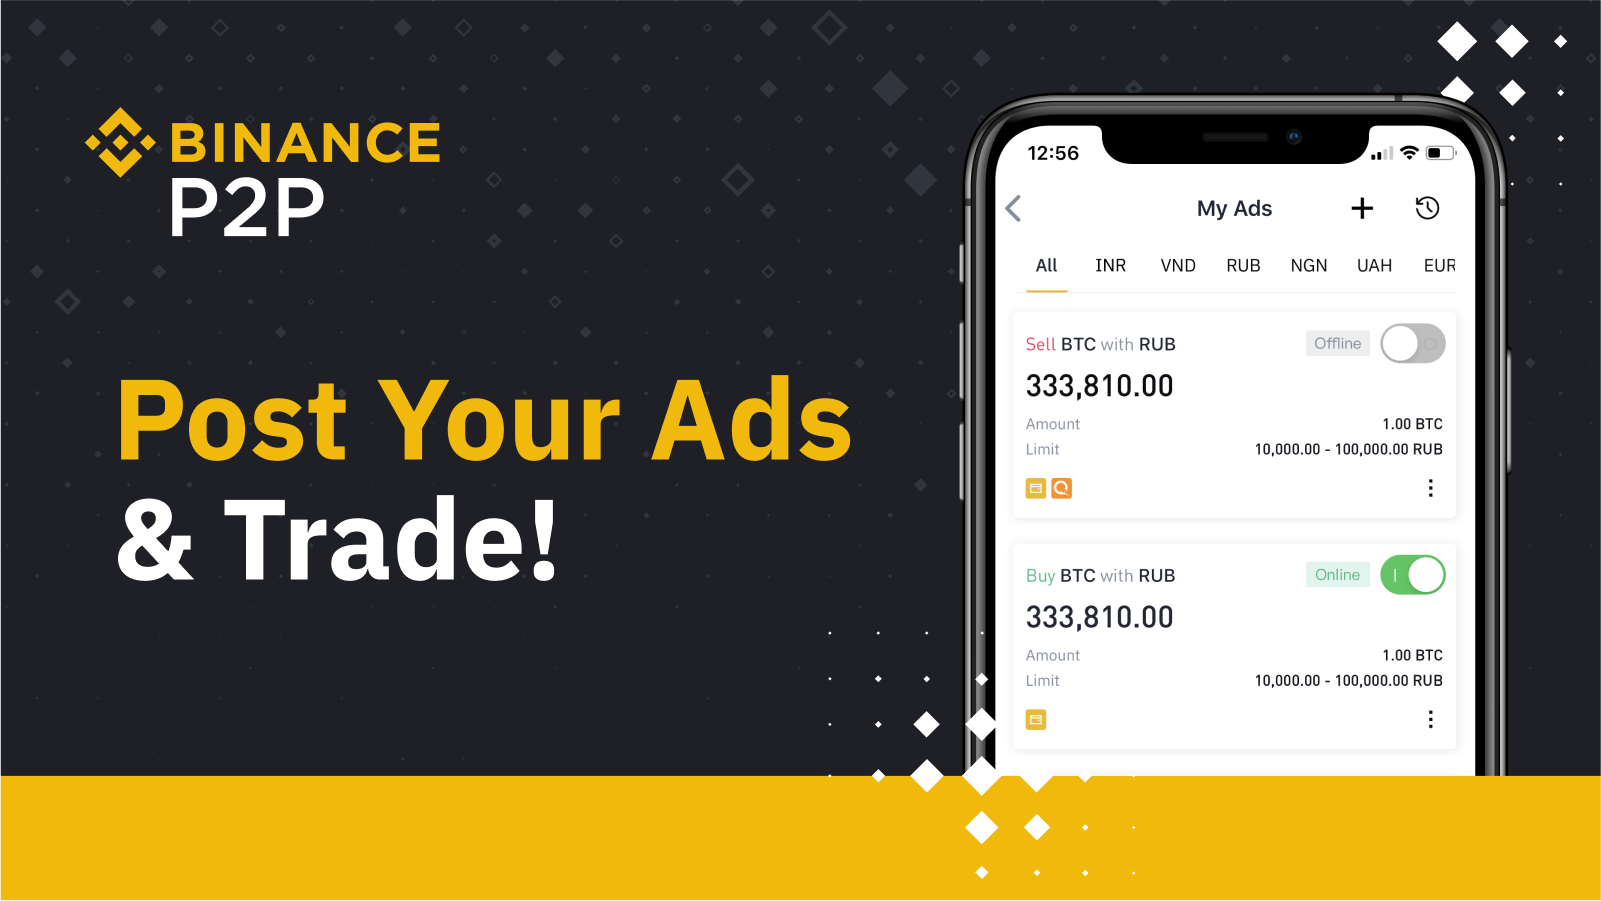 Binance P2P Launches Ad Posting: Start Your Own Crypto Trading ...